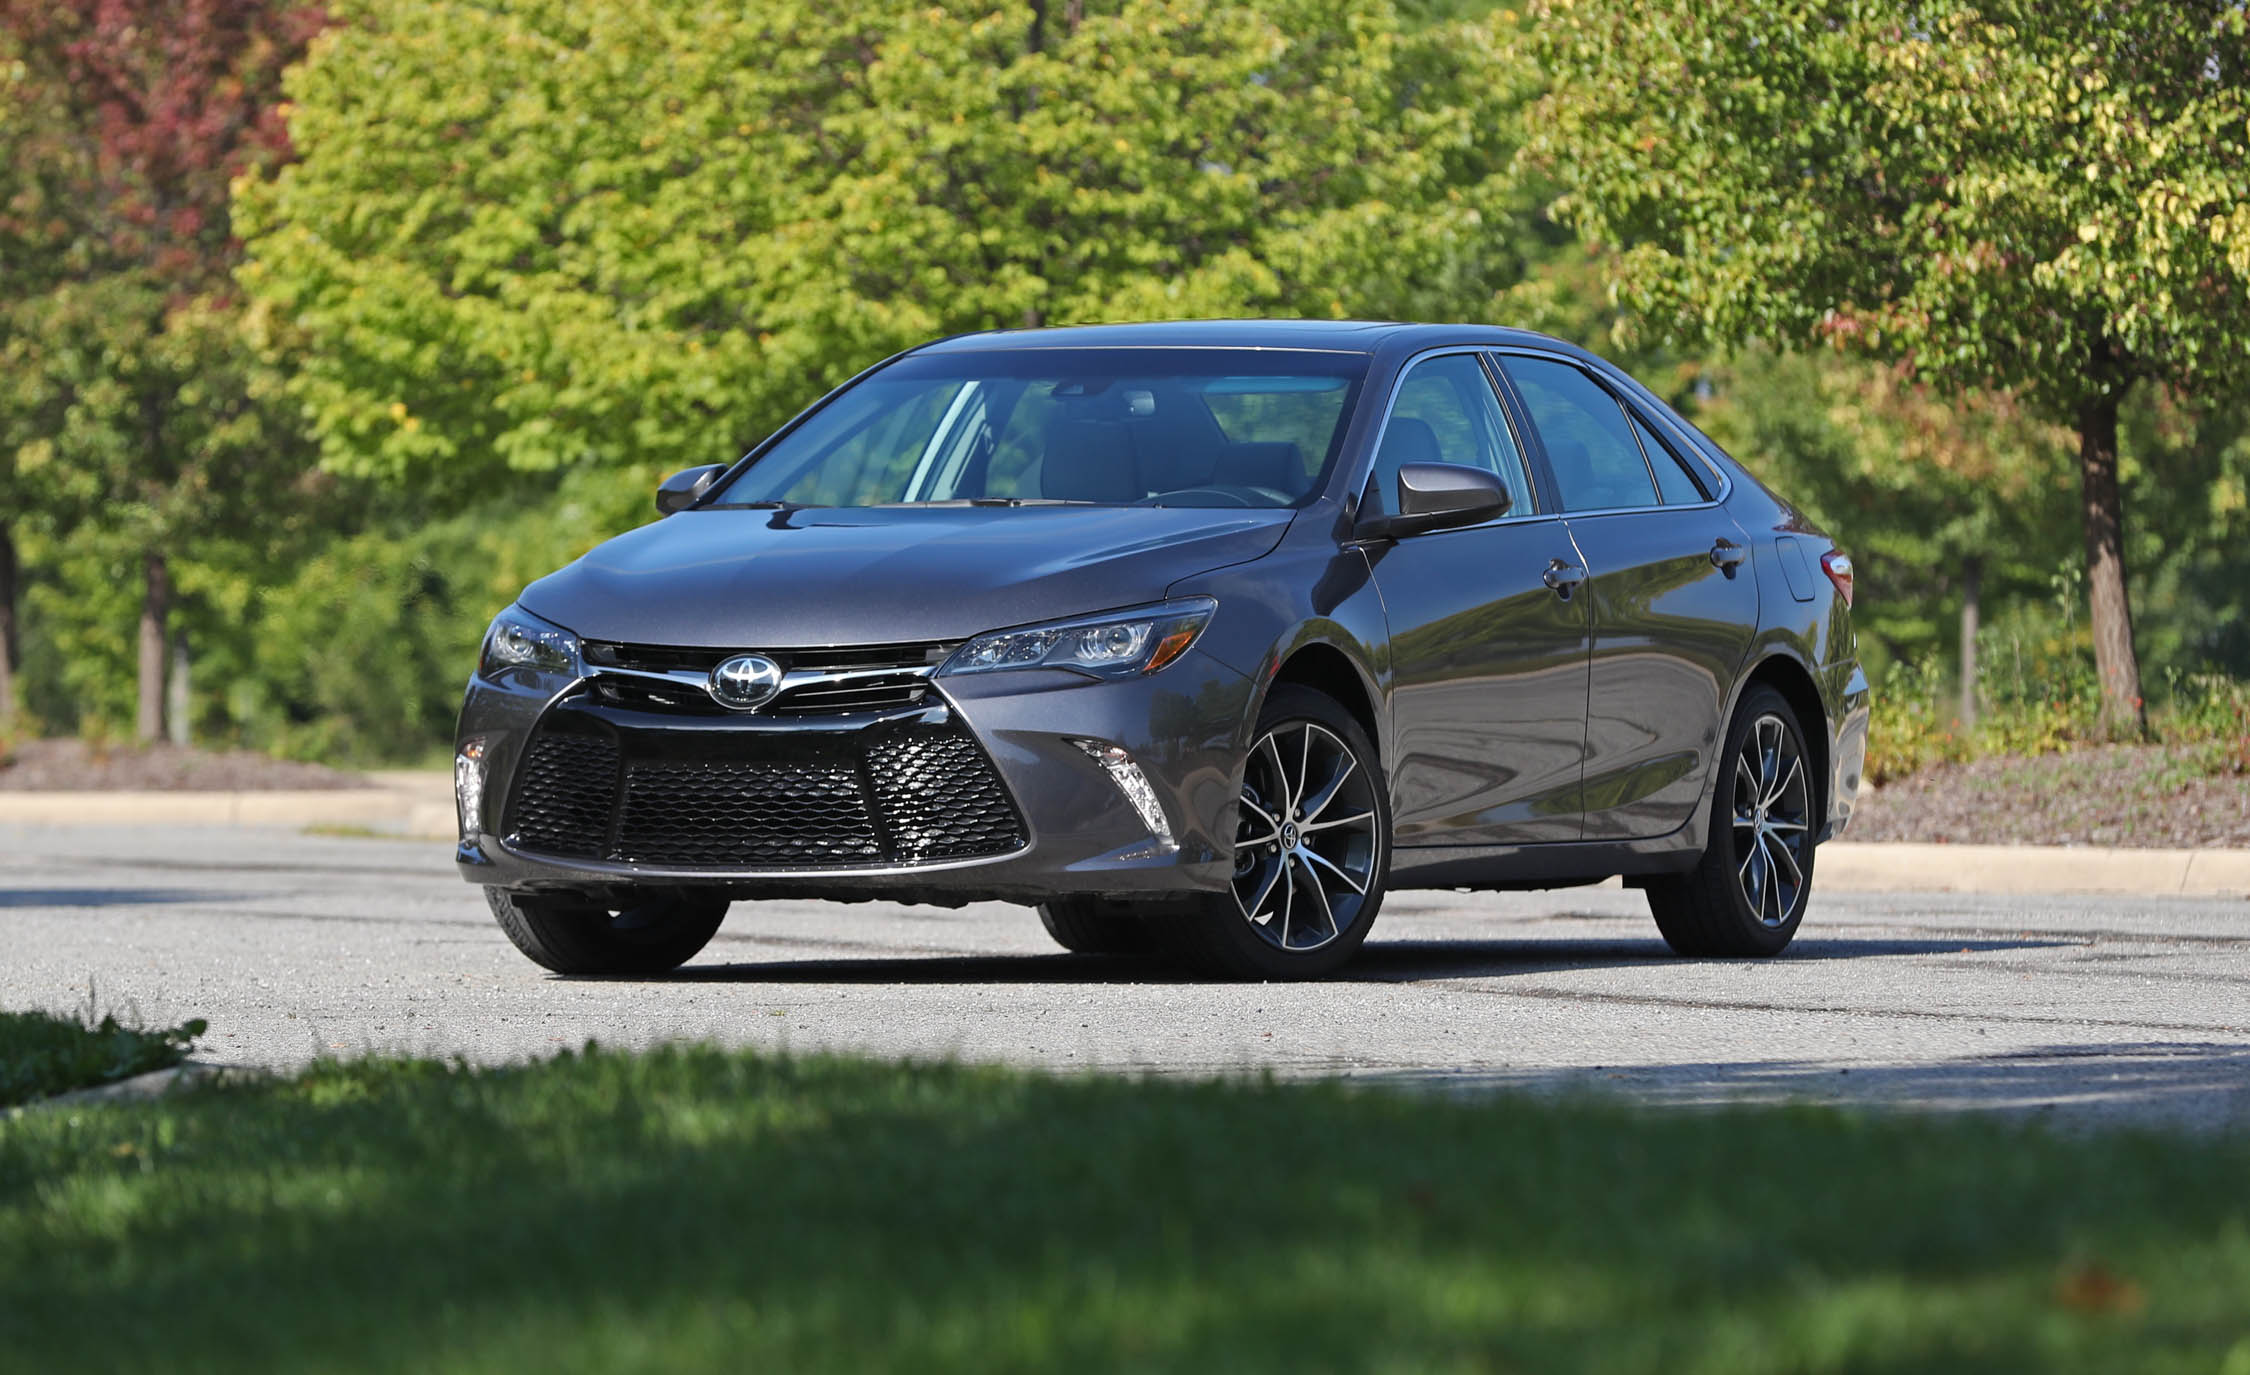 2017 Toyota Camry Exterior (Photo 2 of 37)